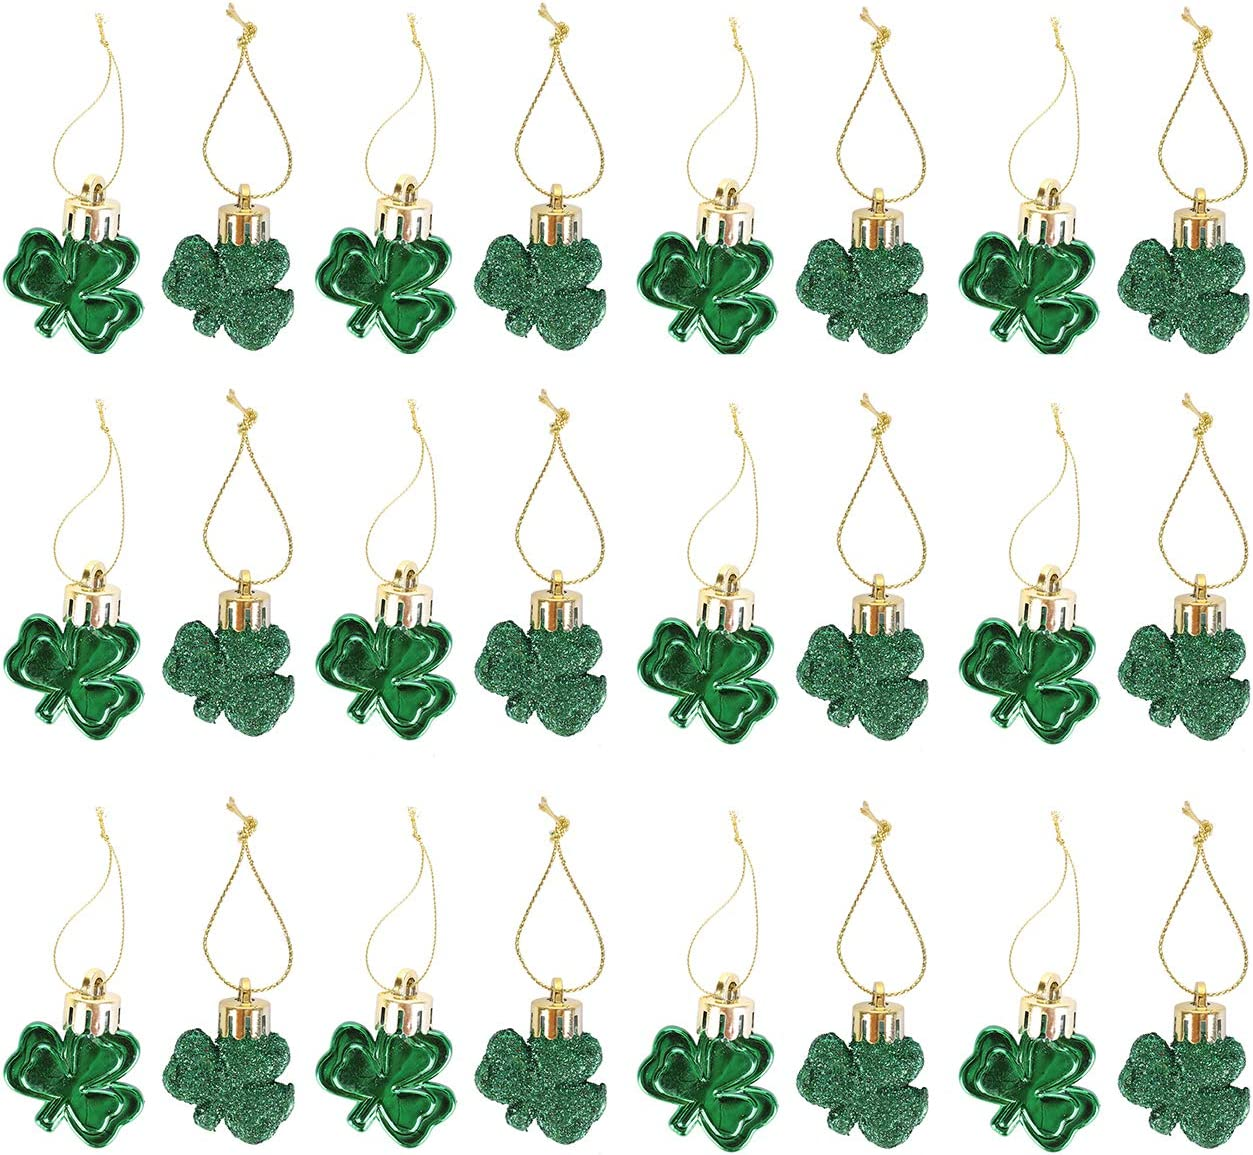 Fashionclubs St Patrick's Day Shamrocks Ornament 24pcs Green Good Luck Clover Hanging Bauble for Tree Table Shelf Home Decoration Irish Day Party Festival Supplies, Glitter and Shatterproof